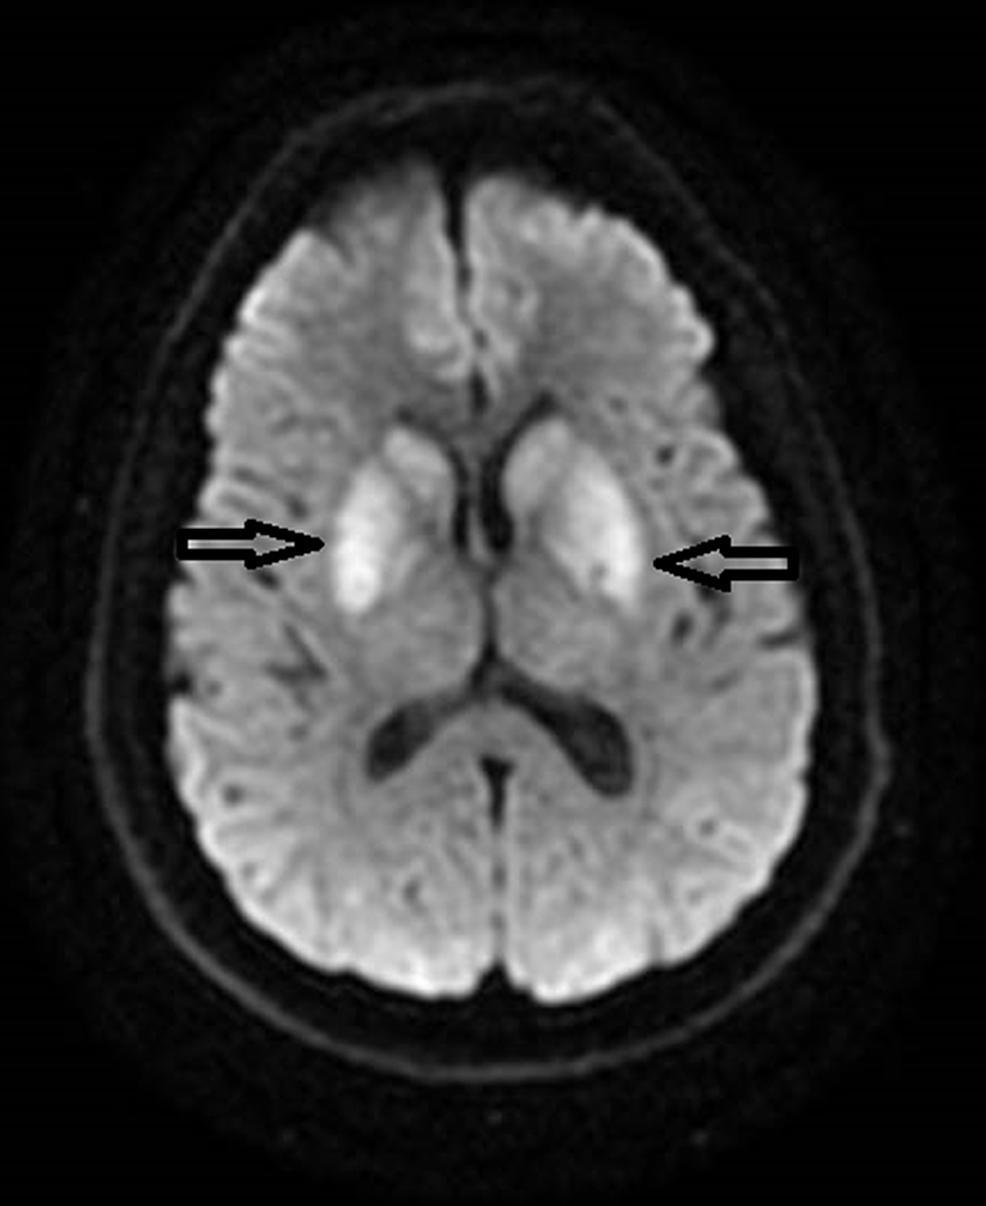 MRI-brain-axial-DWI-showing-restricted-diffusion-in-bilateral-basal-ganglia.